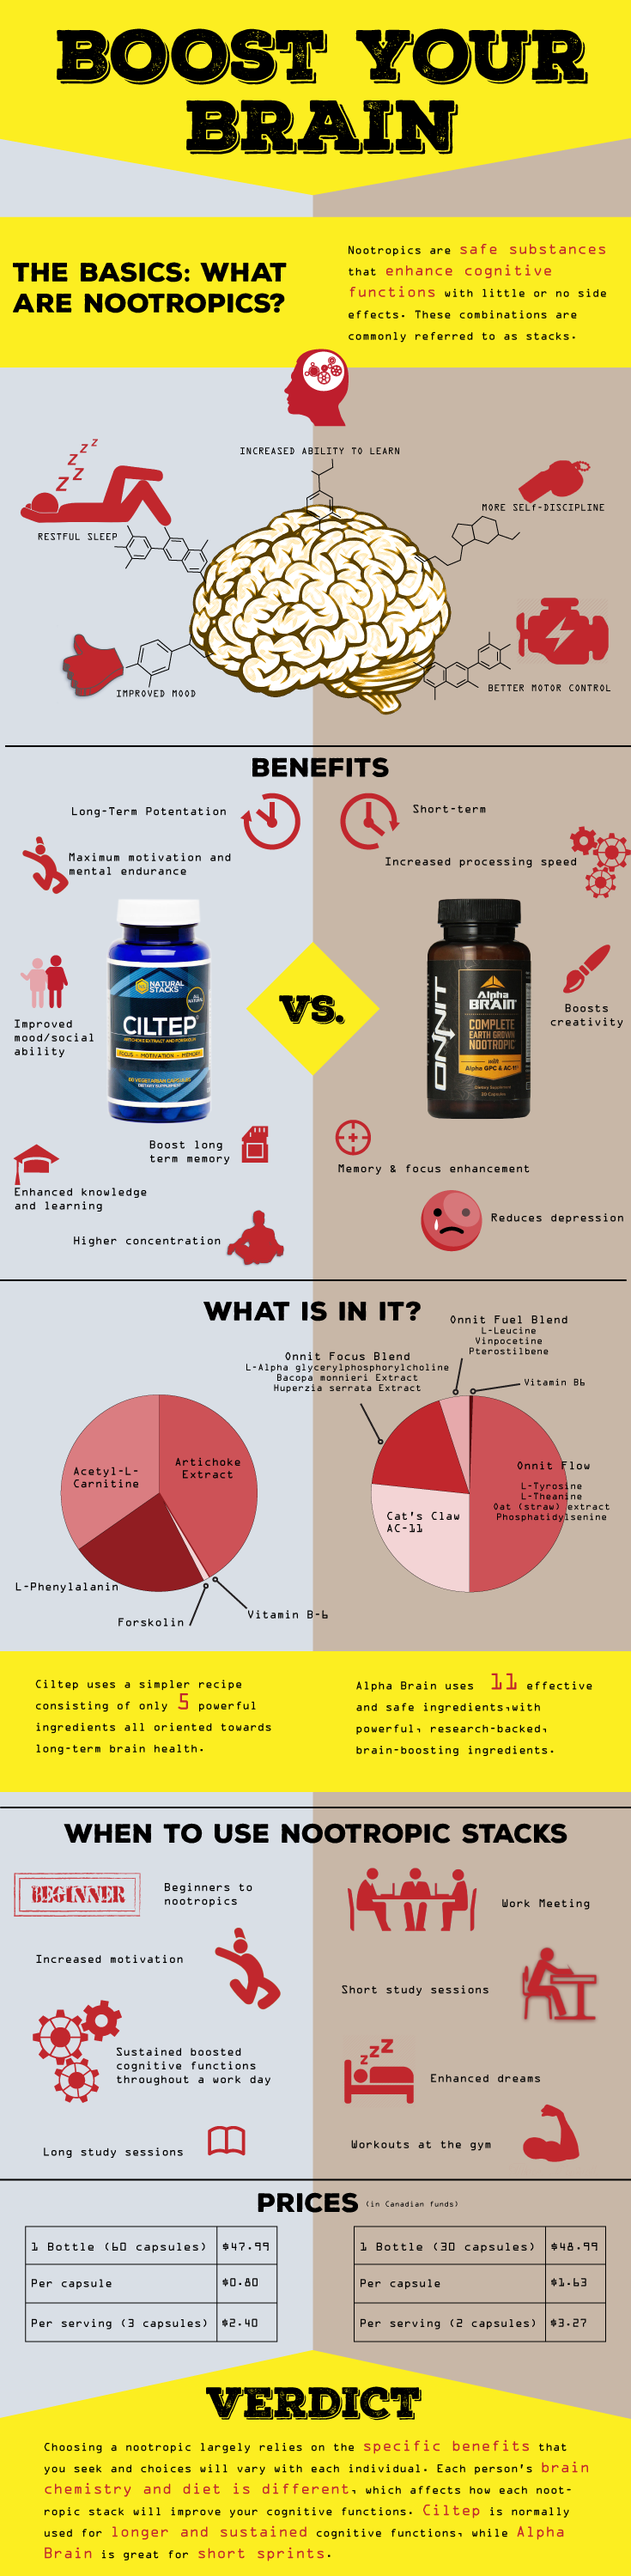 Boost-your-Brain-Infographic.png